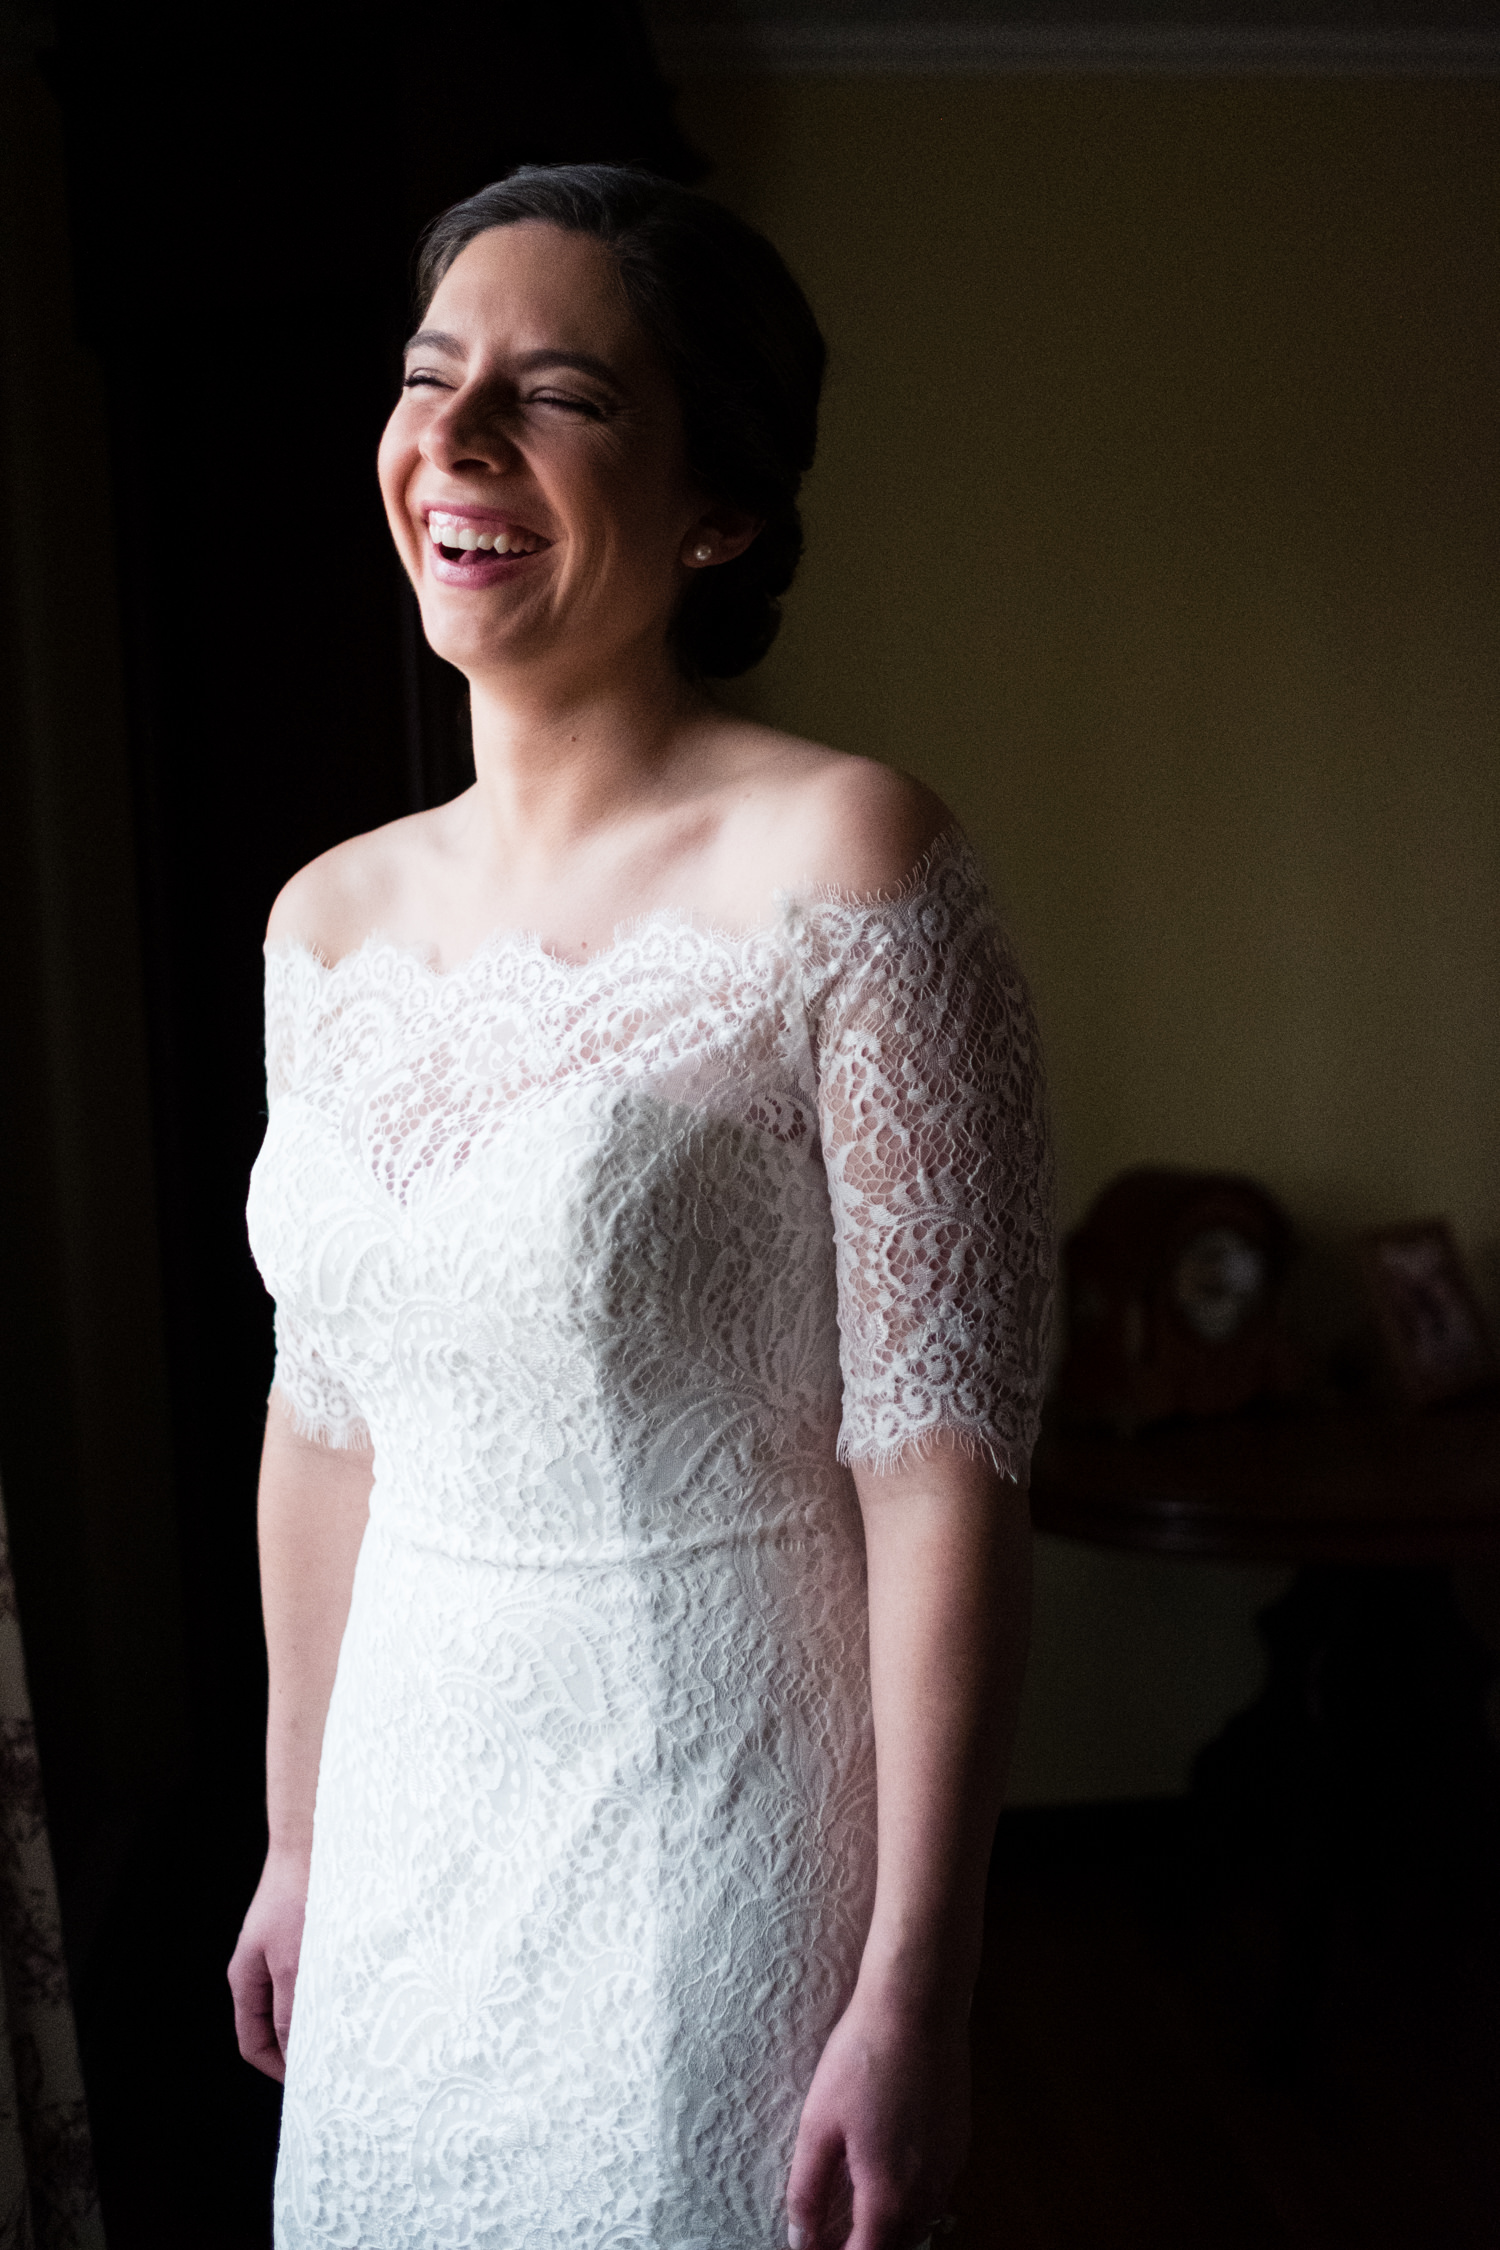 Kate_Phil_Currier_Museum_Wedding_New Hampshire-11.jpg